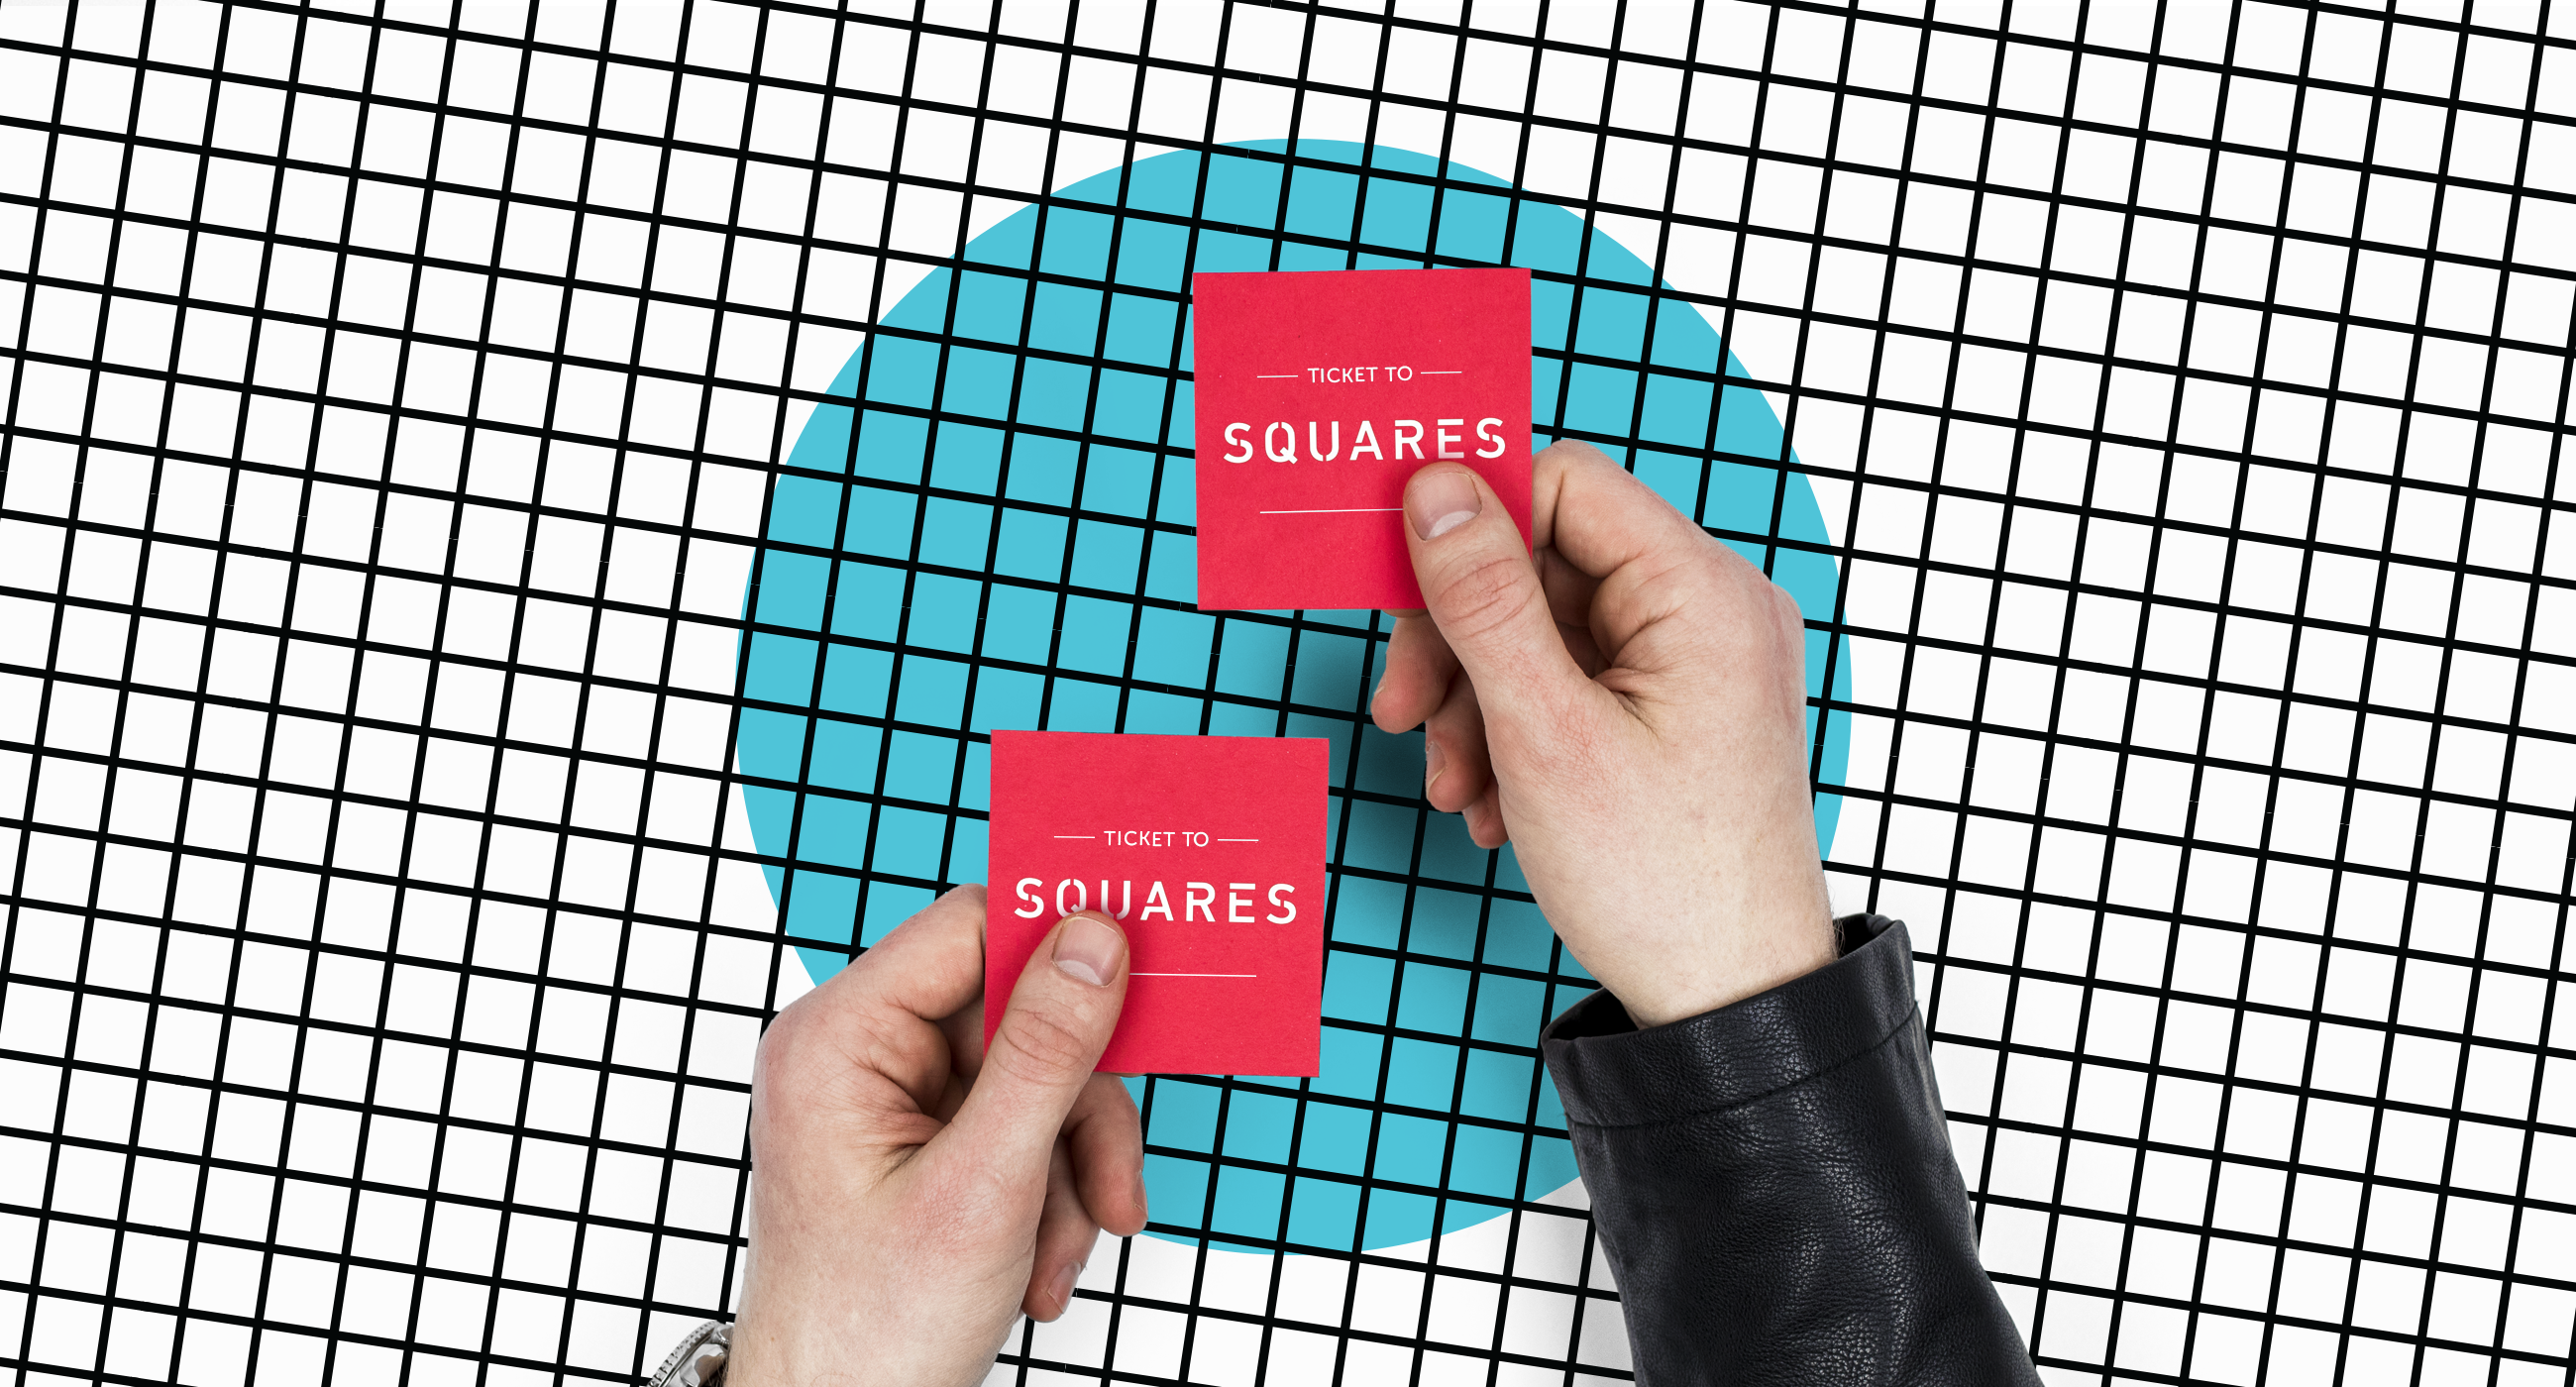 28 days 26 squares product images 2600x1400 2x